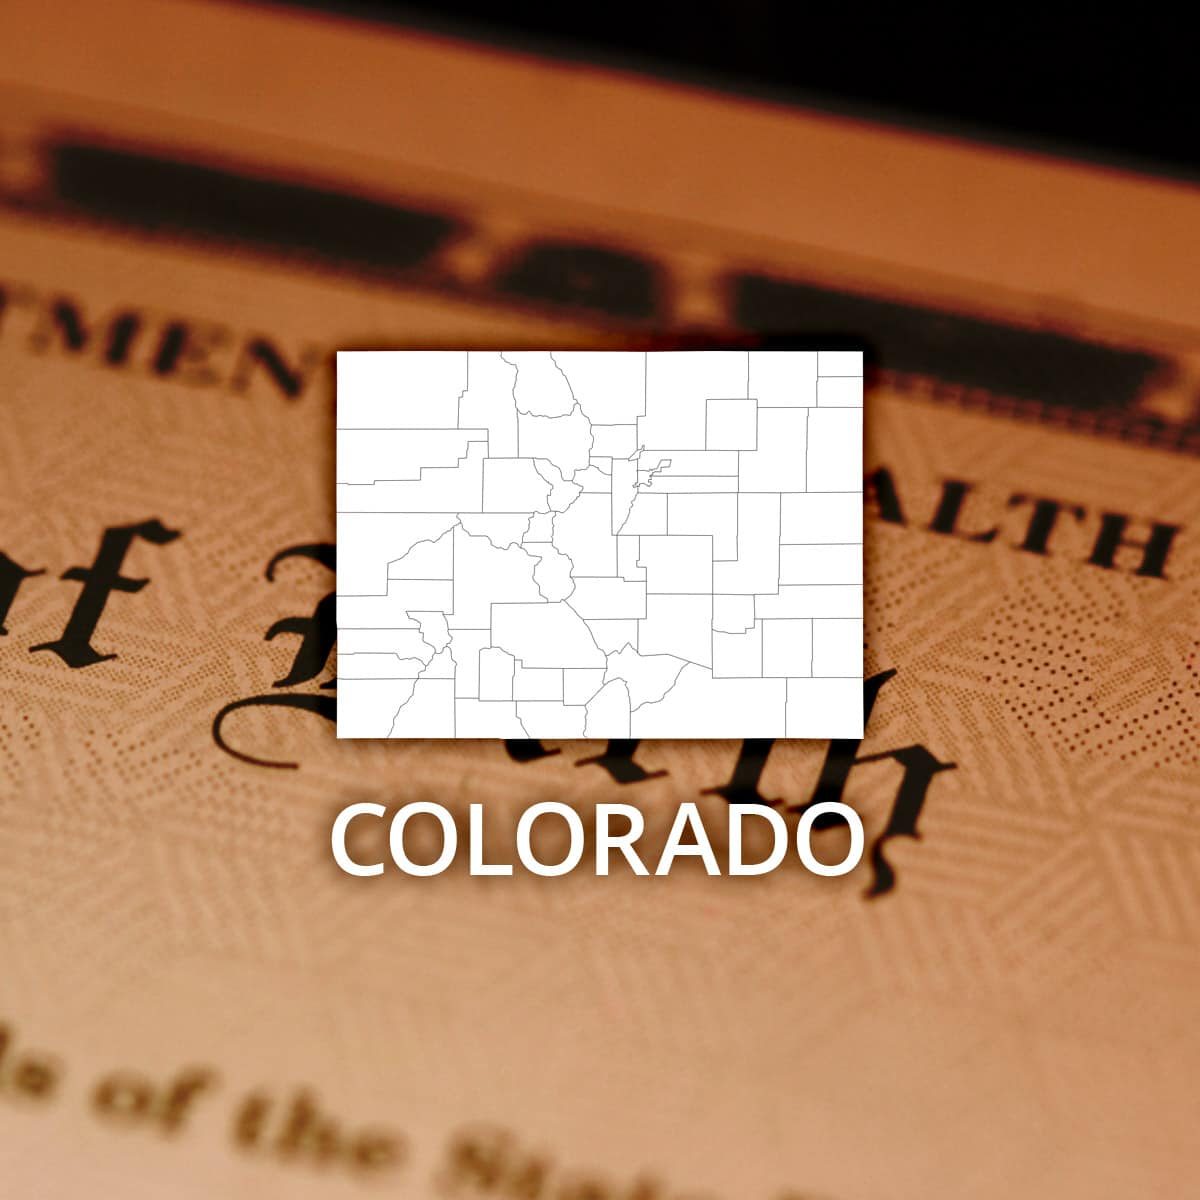 Where to Obtain a Colorado Birth Certificate